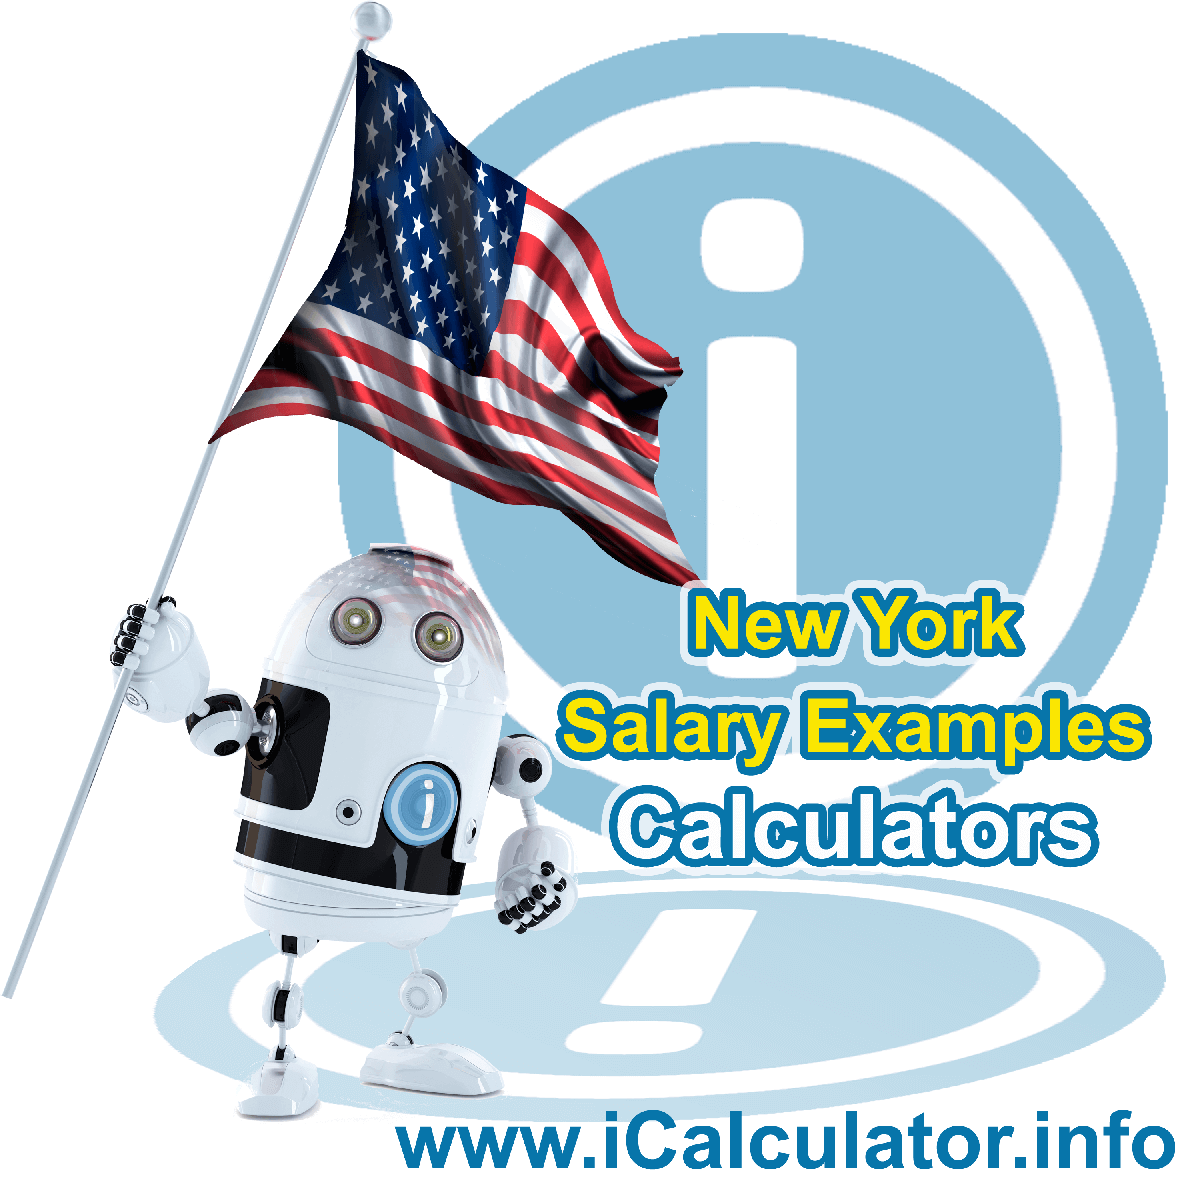 New York Salary Example for $40.00 in 2020 | iCalculator | $40.00 salary example for employee and employer paying New York State tincome taxes. Detailed salary after tax calculation including New York State Tax, Federal State Tax, Medicare Deductions, Social Security, Capital Gains and other income tax and salary deductions complete with supporting New York state tax tables